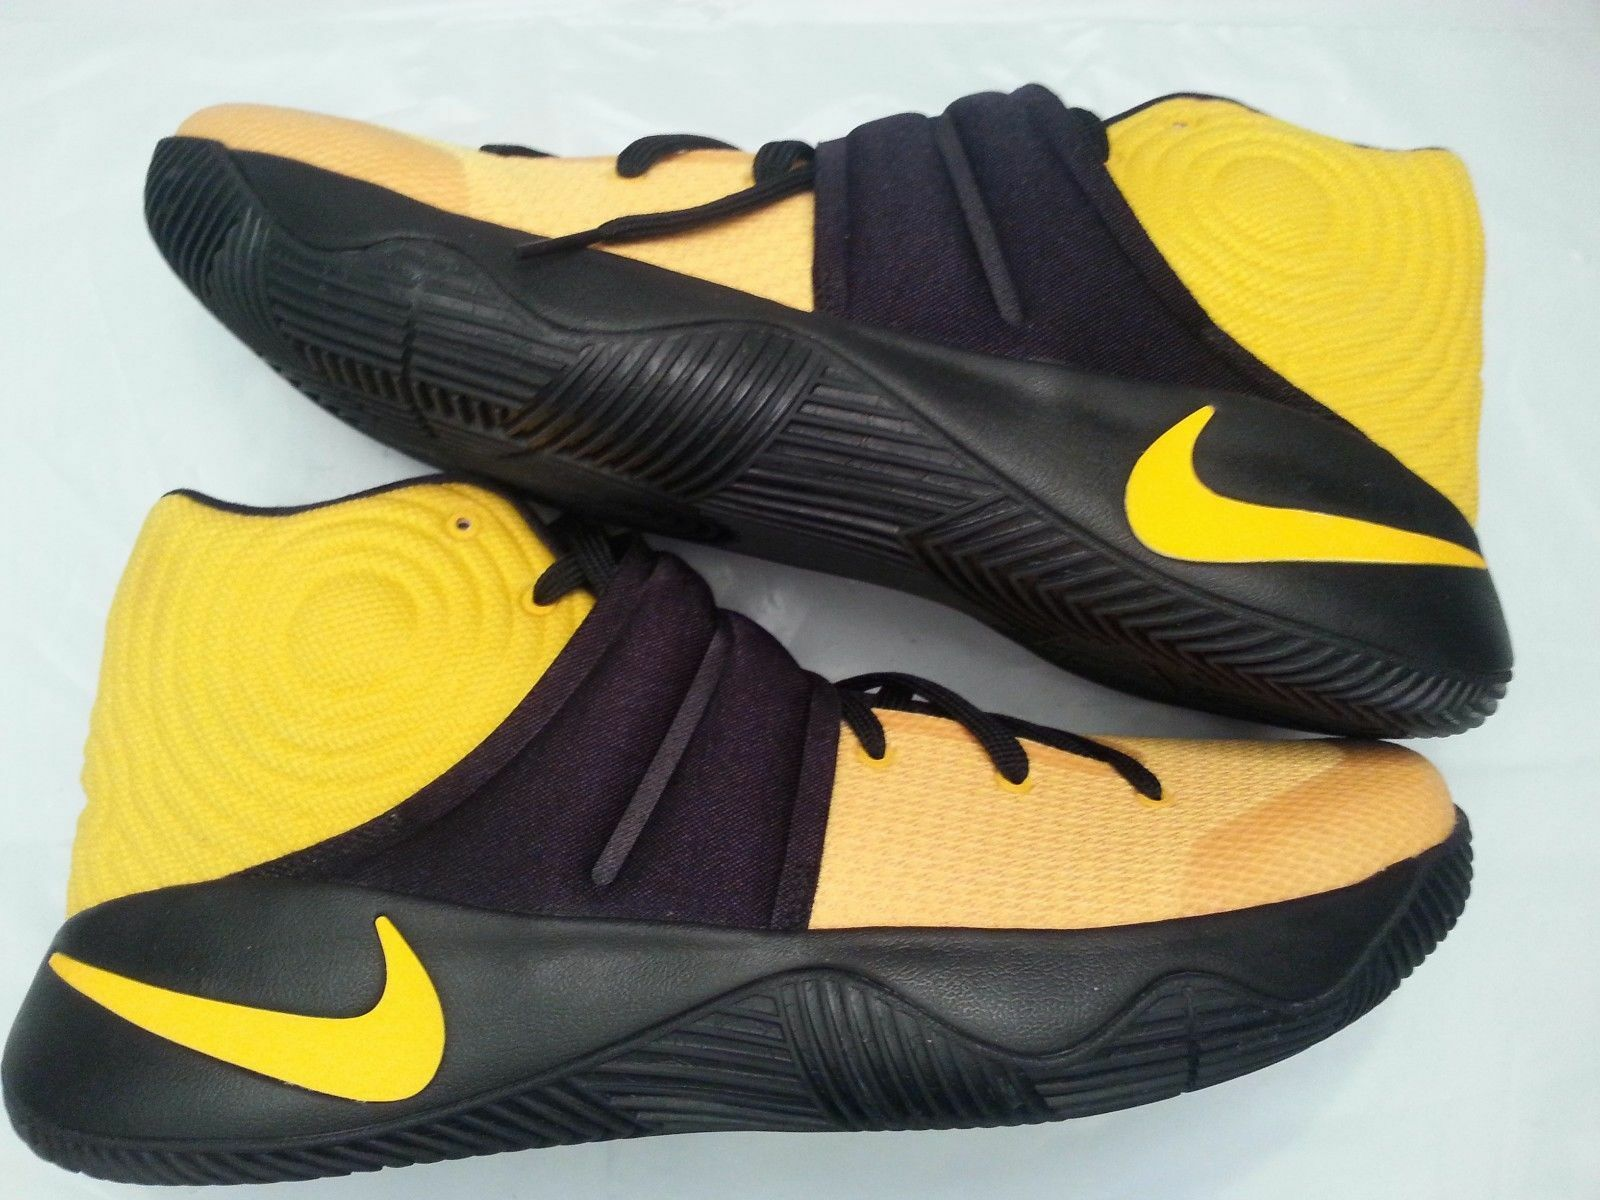 Nike Kyrie 2 ID Black Yellow Size 14. Iowa bhm all star championship mvp